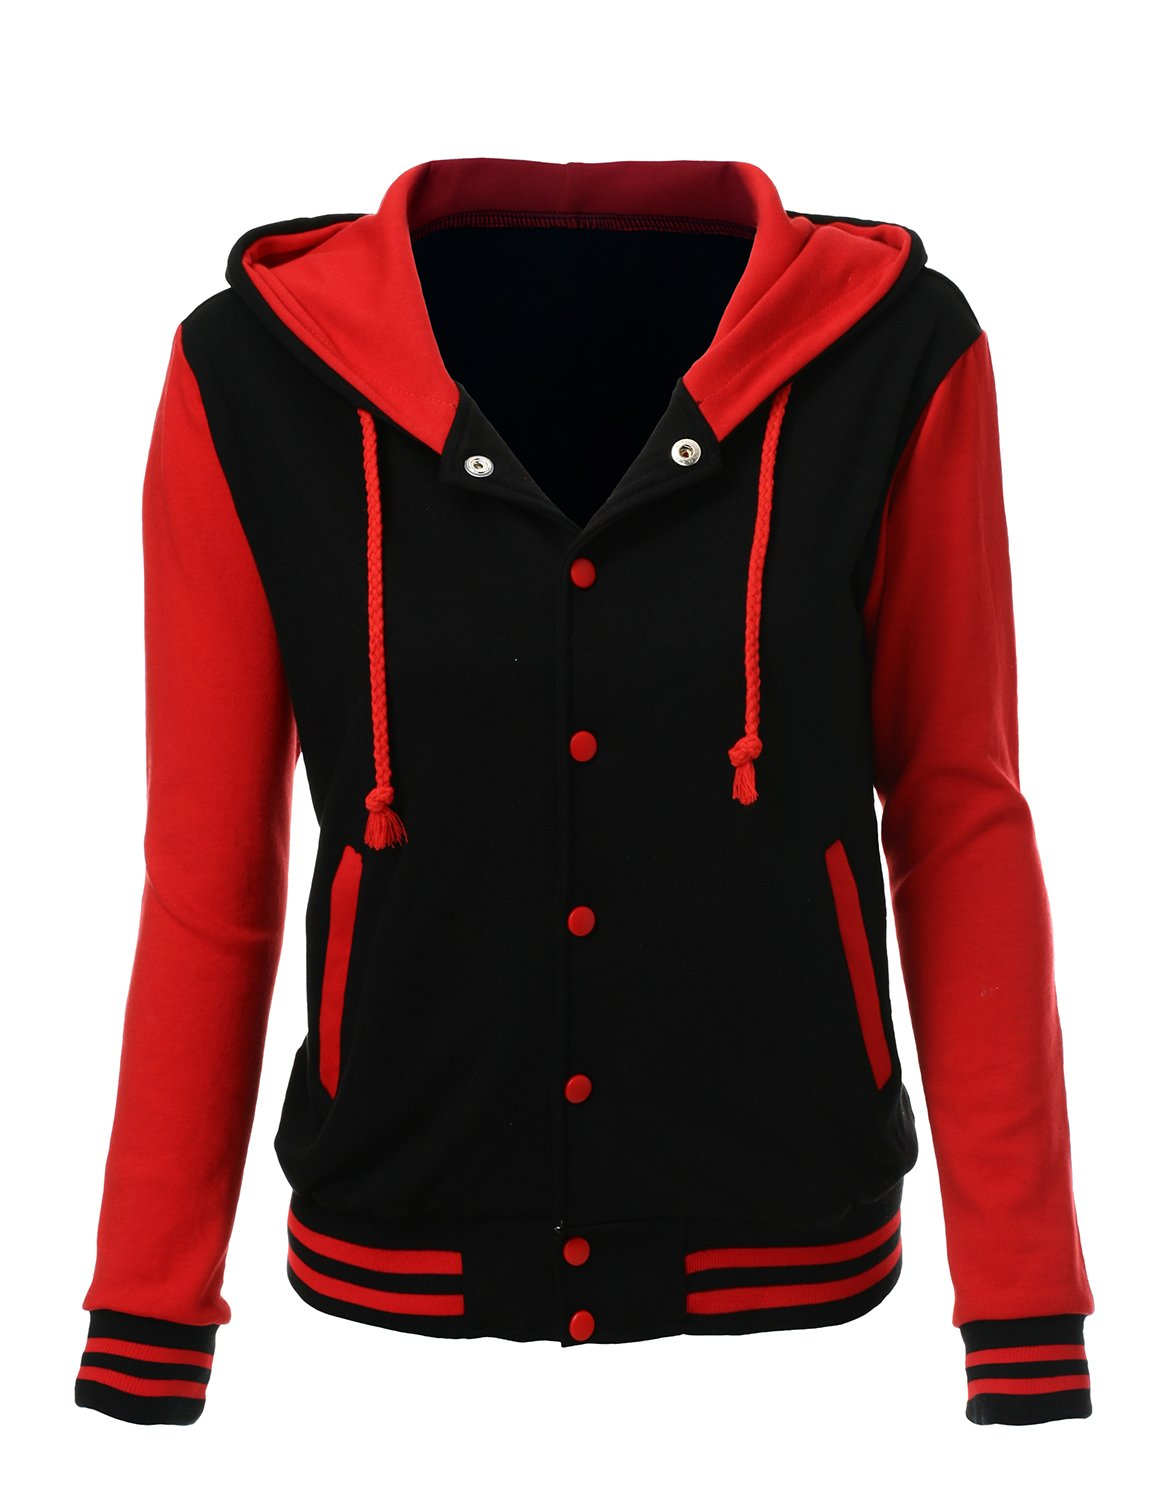 Stylish Color Contrast Long Sleeves Hoodie Varsity Jacket Black Red XL by Xpril